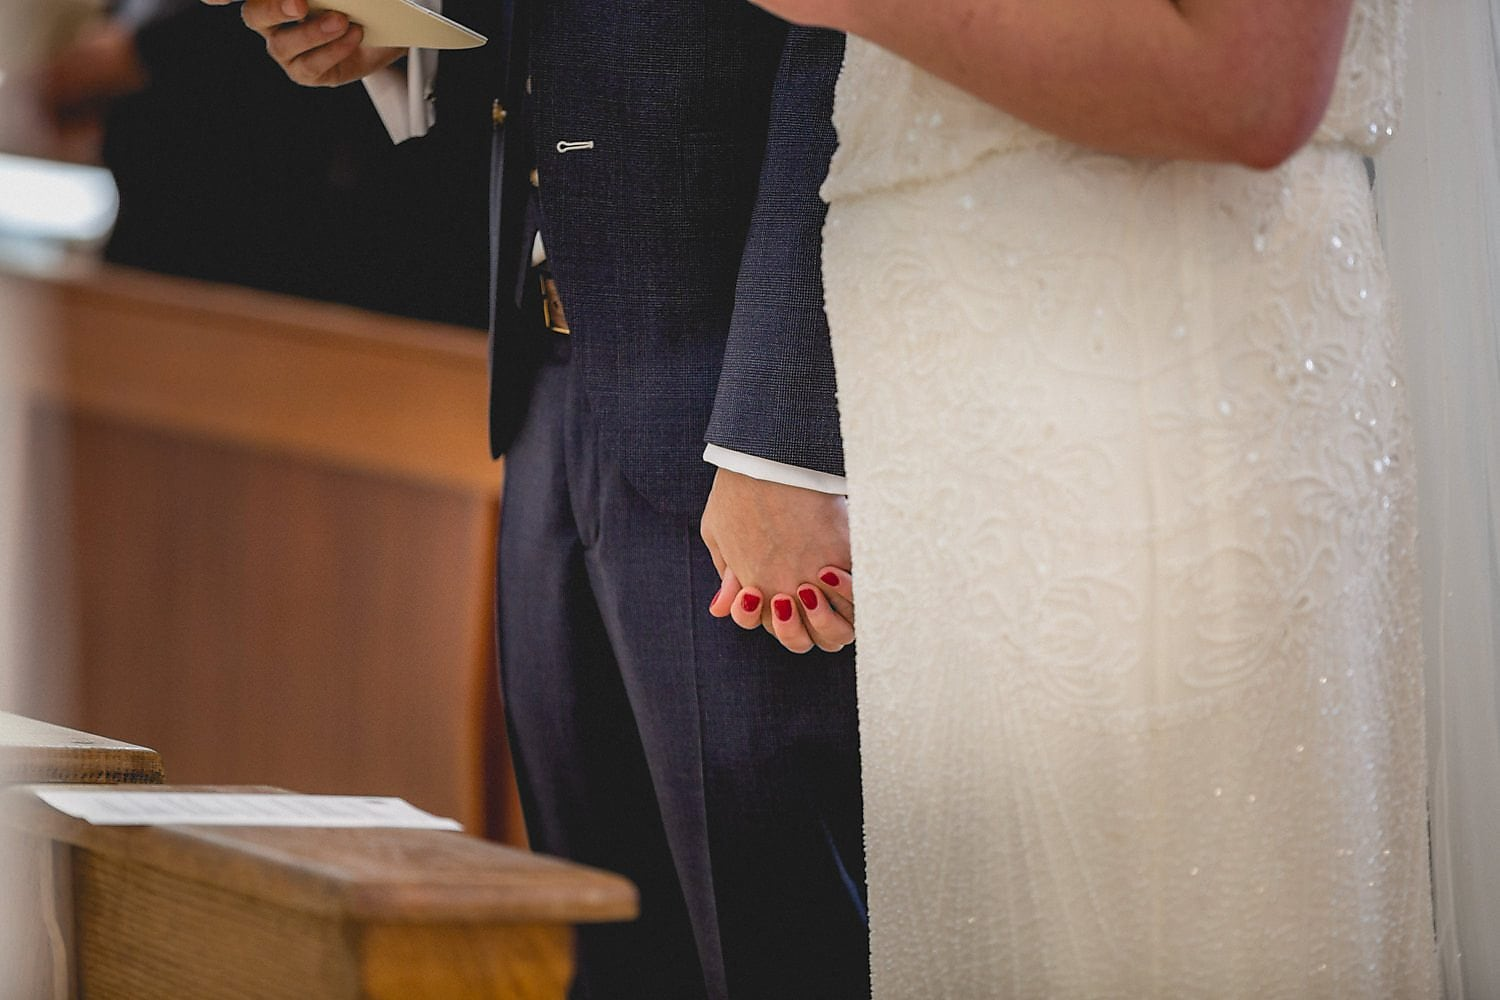 The bride and groom hold hands at the altar